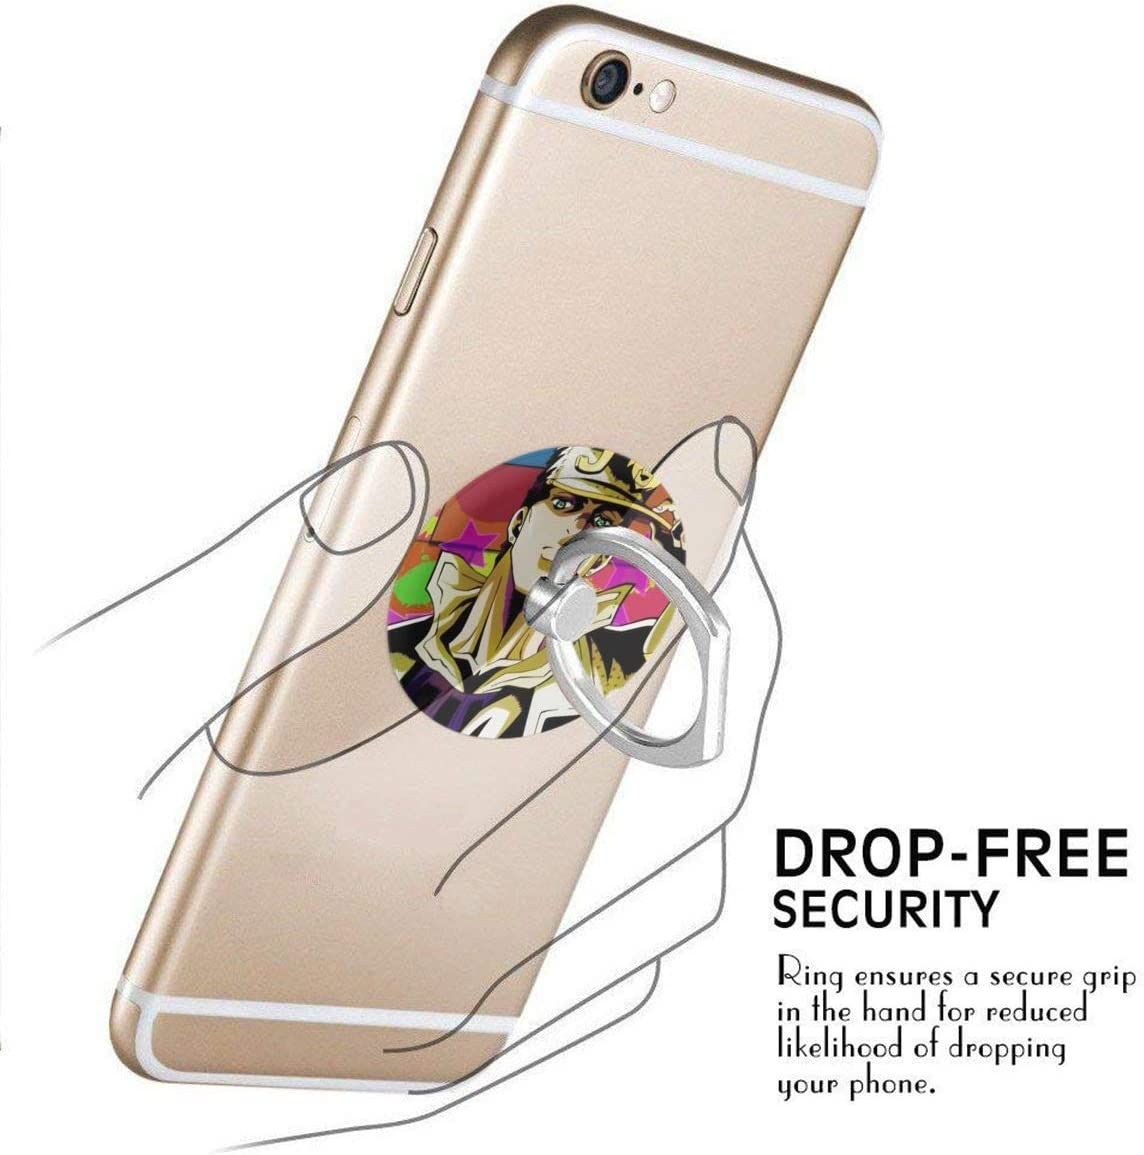 Samsung Phone and Smartphones Multi-Function 360 Degree Rotating Ring Stand Grip Mounts for iPhone HesterCoyle Jojos Bizarre Adventure Cute Phone Ring Holder